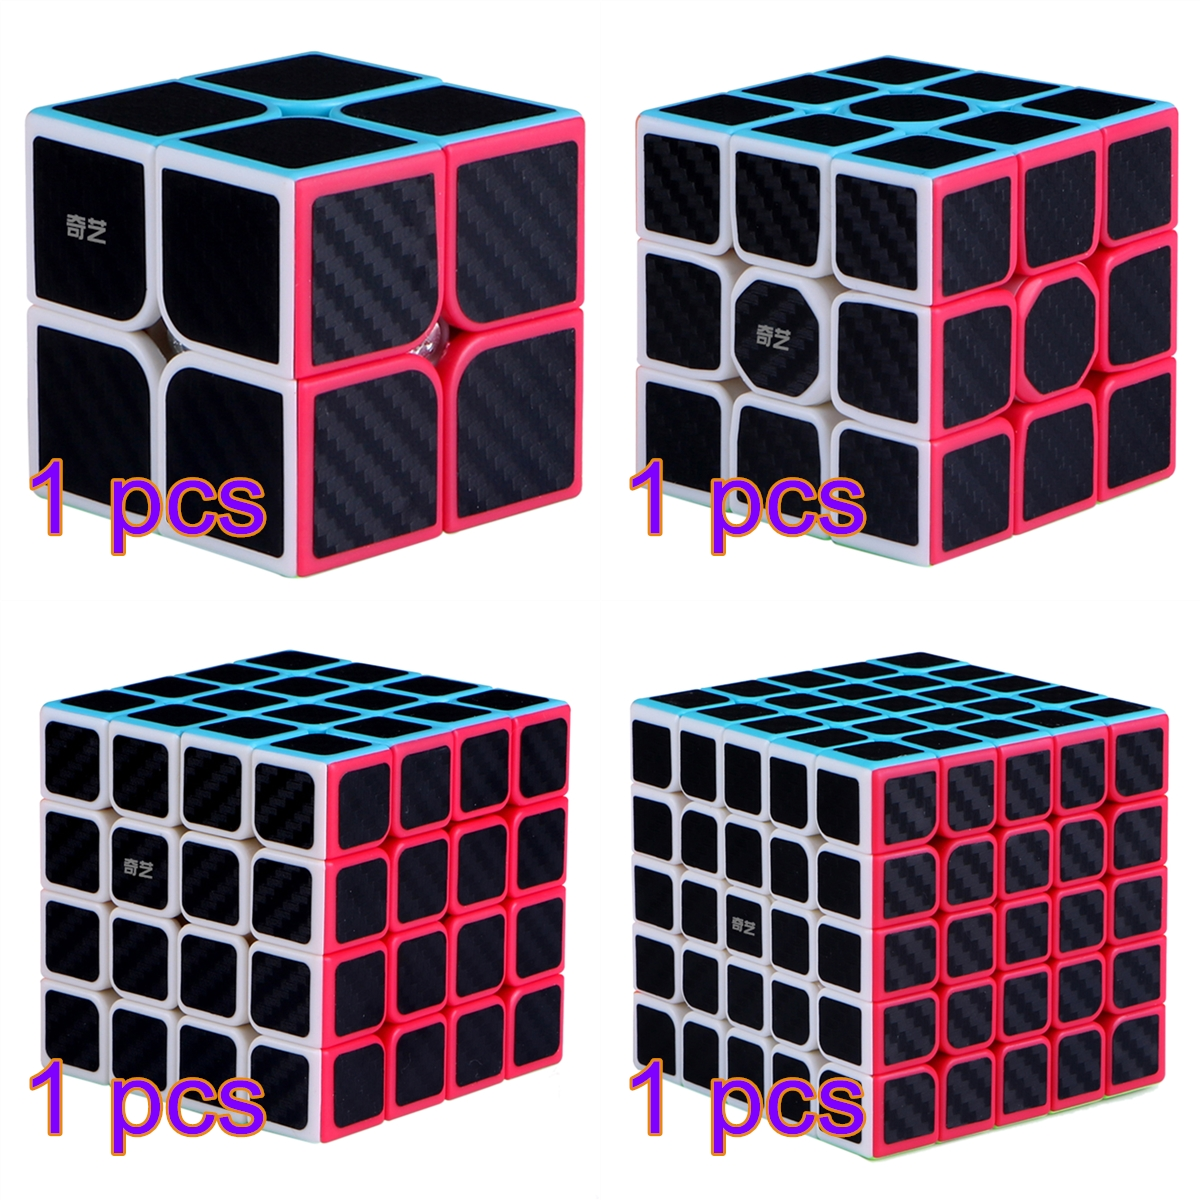 4Pcs <font><b>Qiyi</b></font> Stickered Version Cube Set Qidi <font><b>S</b></font> 2x2 Warrior W <font><b>Qiyuan</b></font> <font><b>S</b></font> <font><b>4x4</b></font> Qizheng <font><b>S</b></font> 5x5 Speed pandora cube toys image